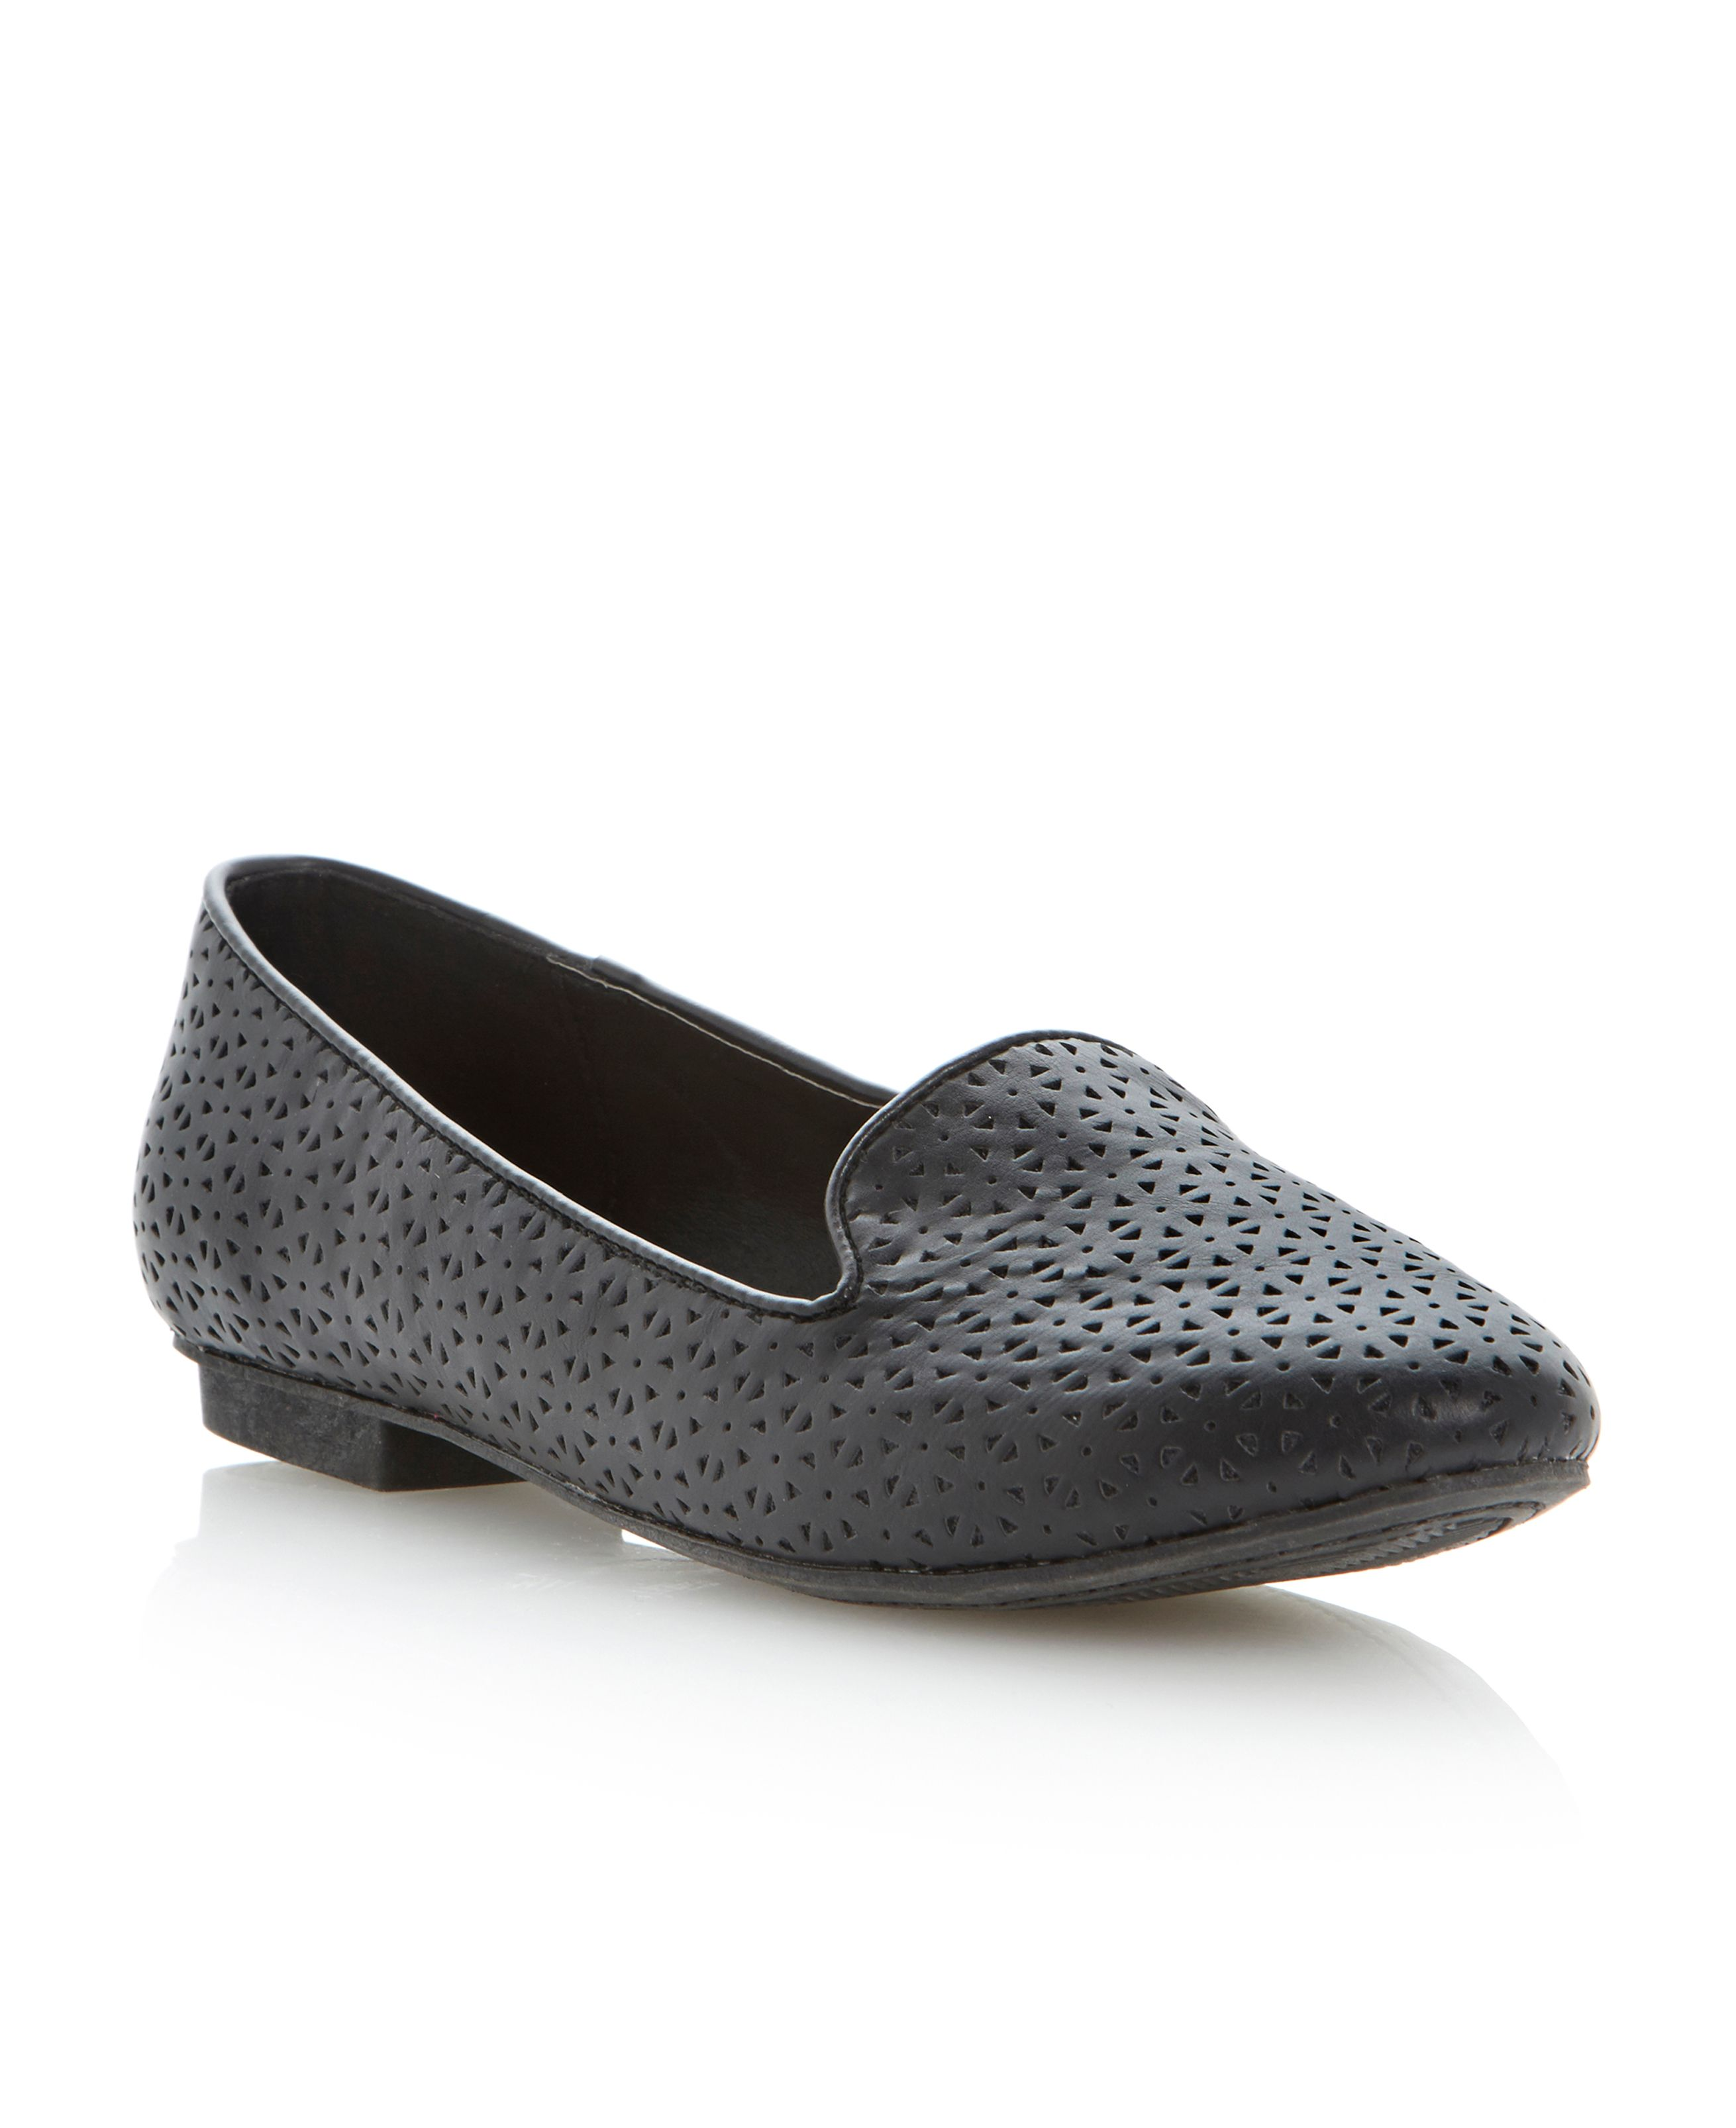 Myleen round toe flat slipper shoes